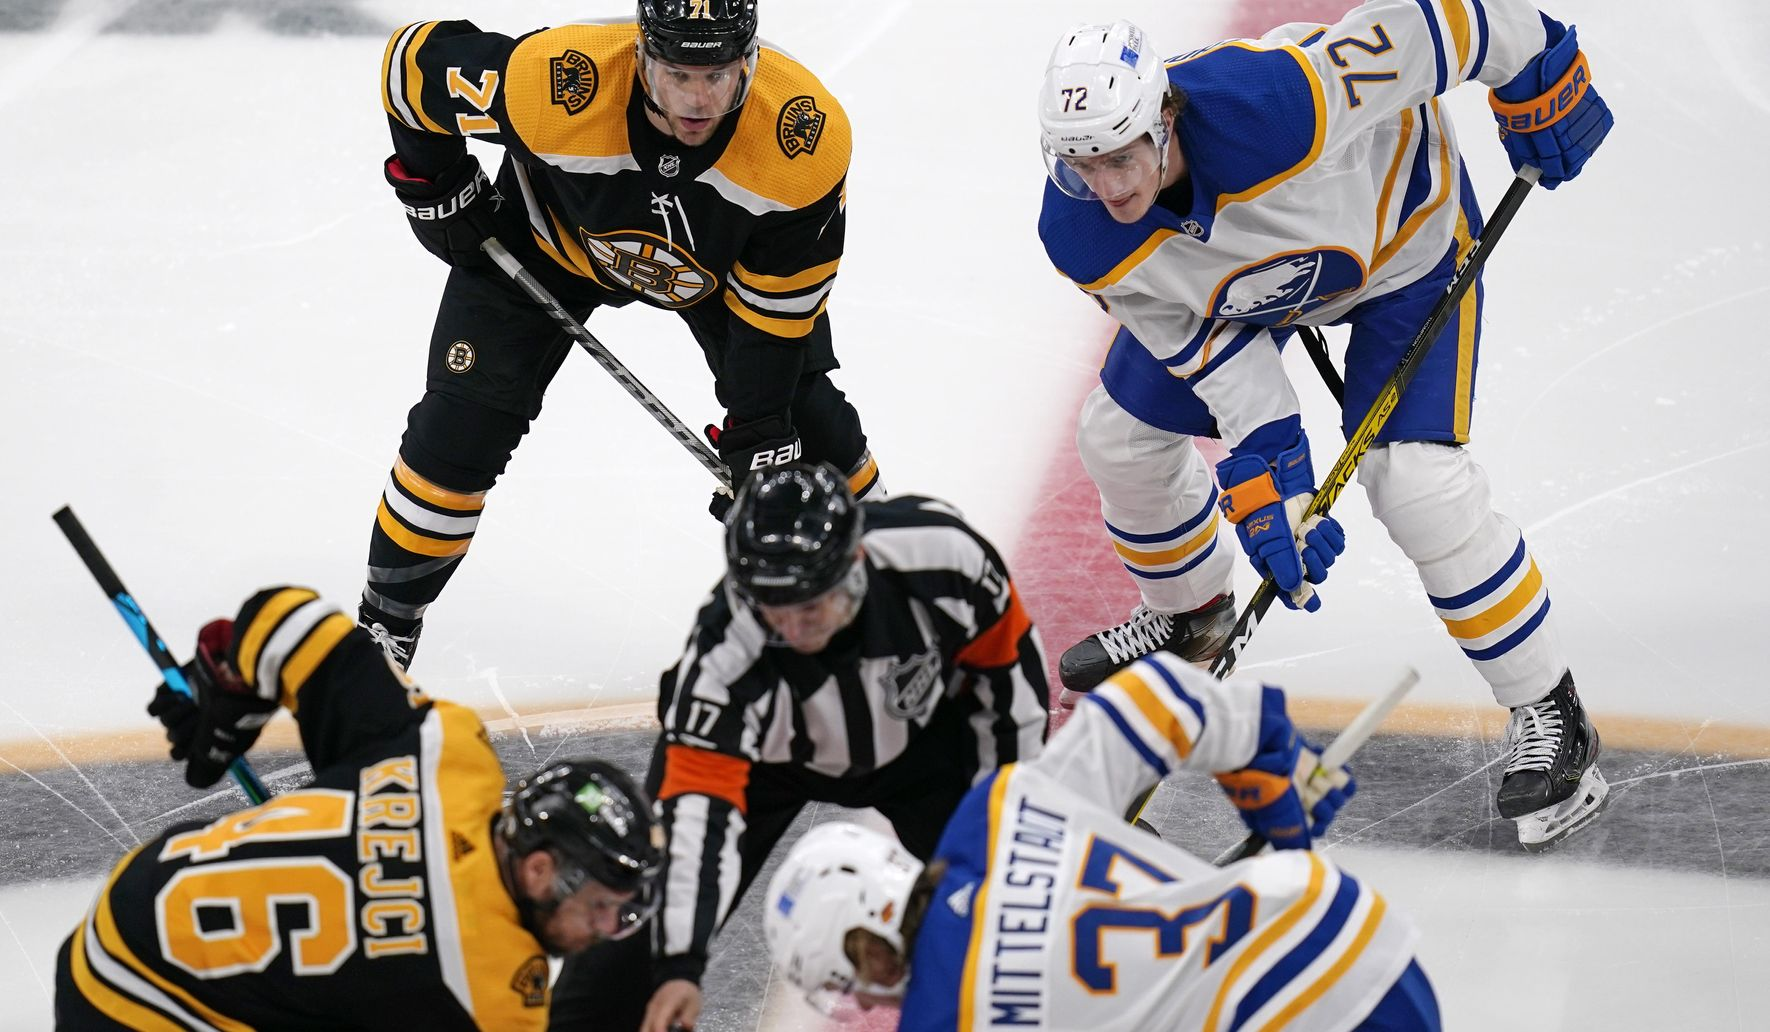 Bruins beat Sabres 3-2 in shootout in Hall's debut